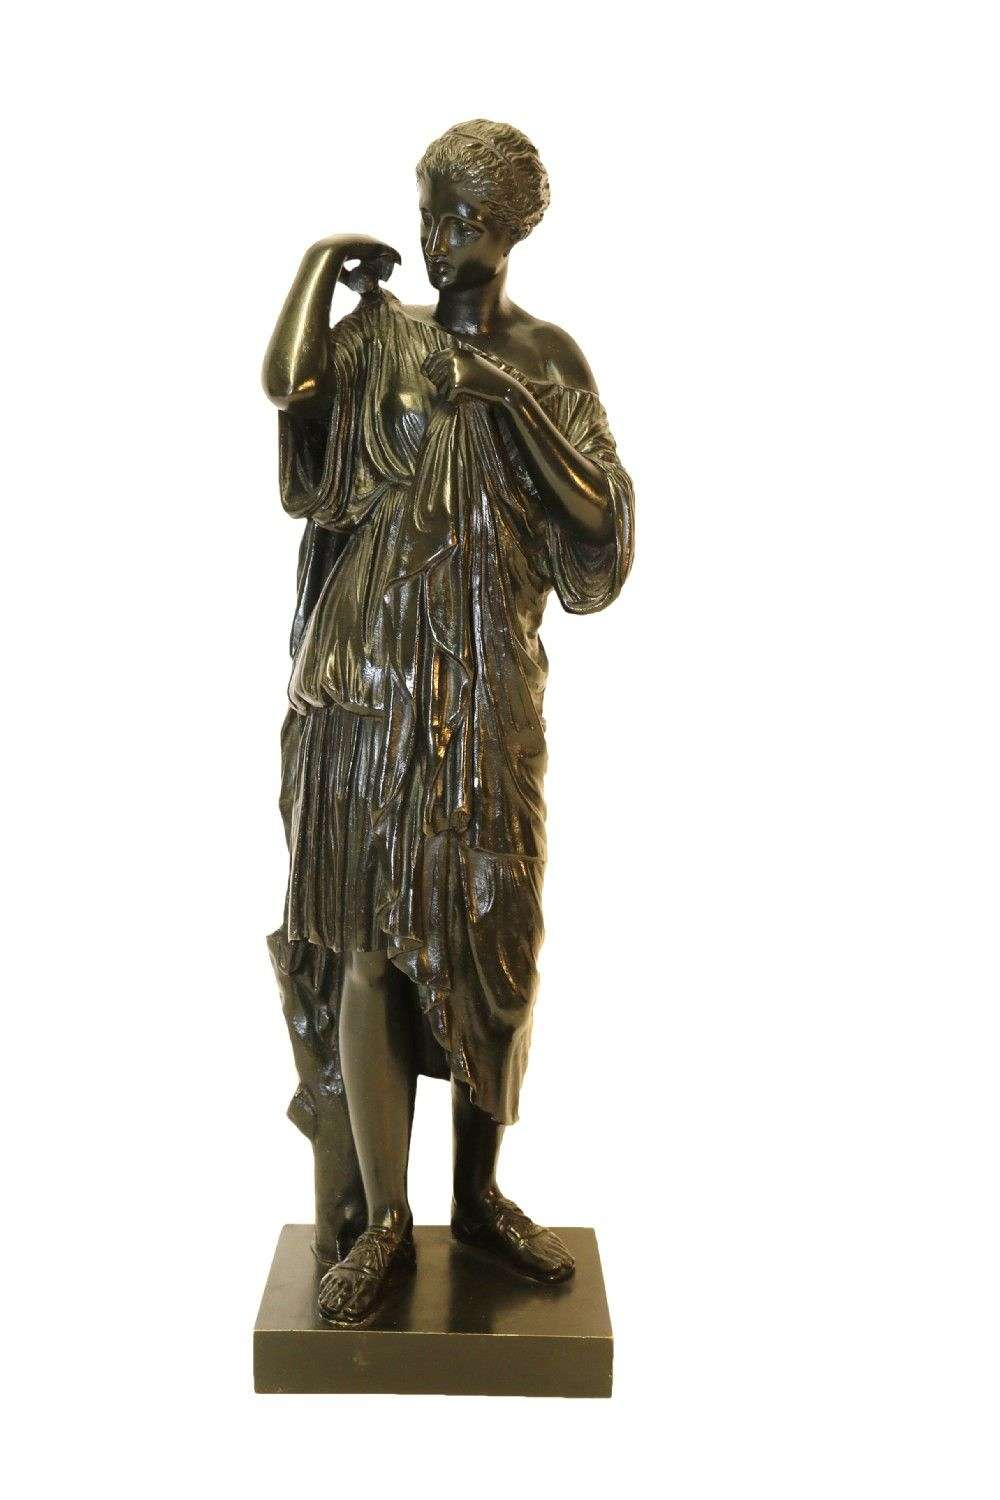 19th Century Classical Bronze Of Diana The Huntress